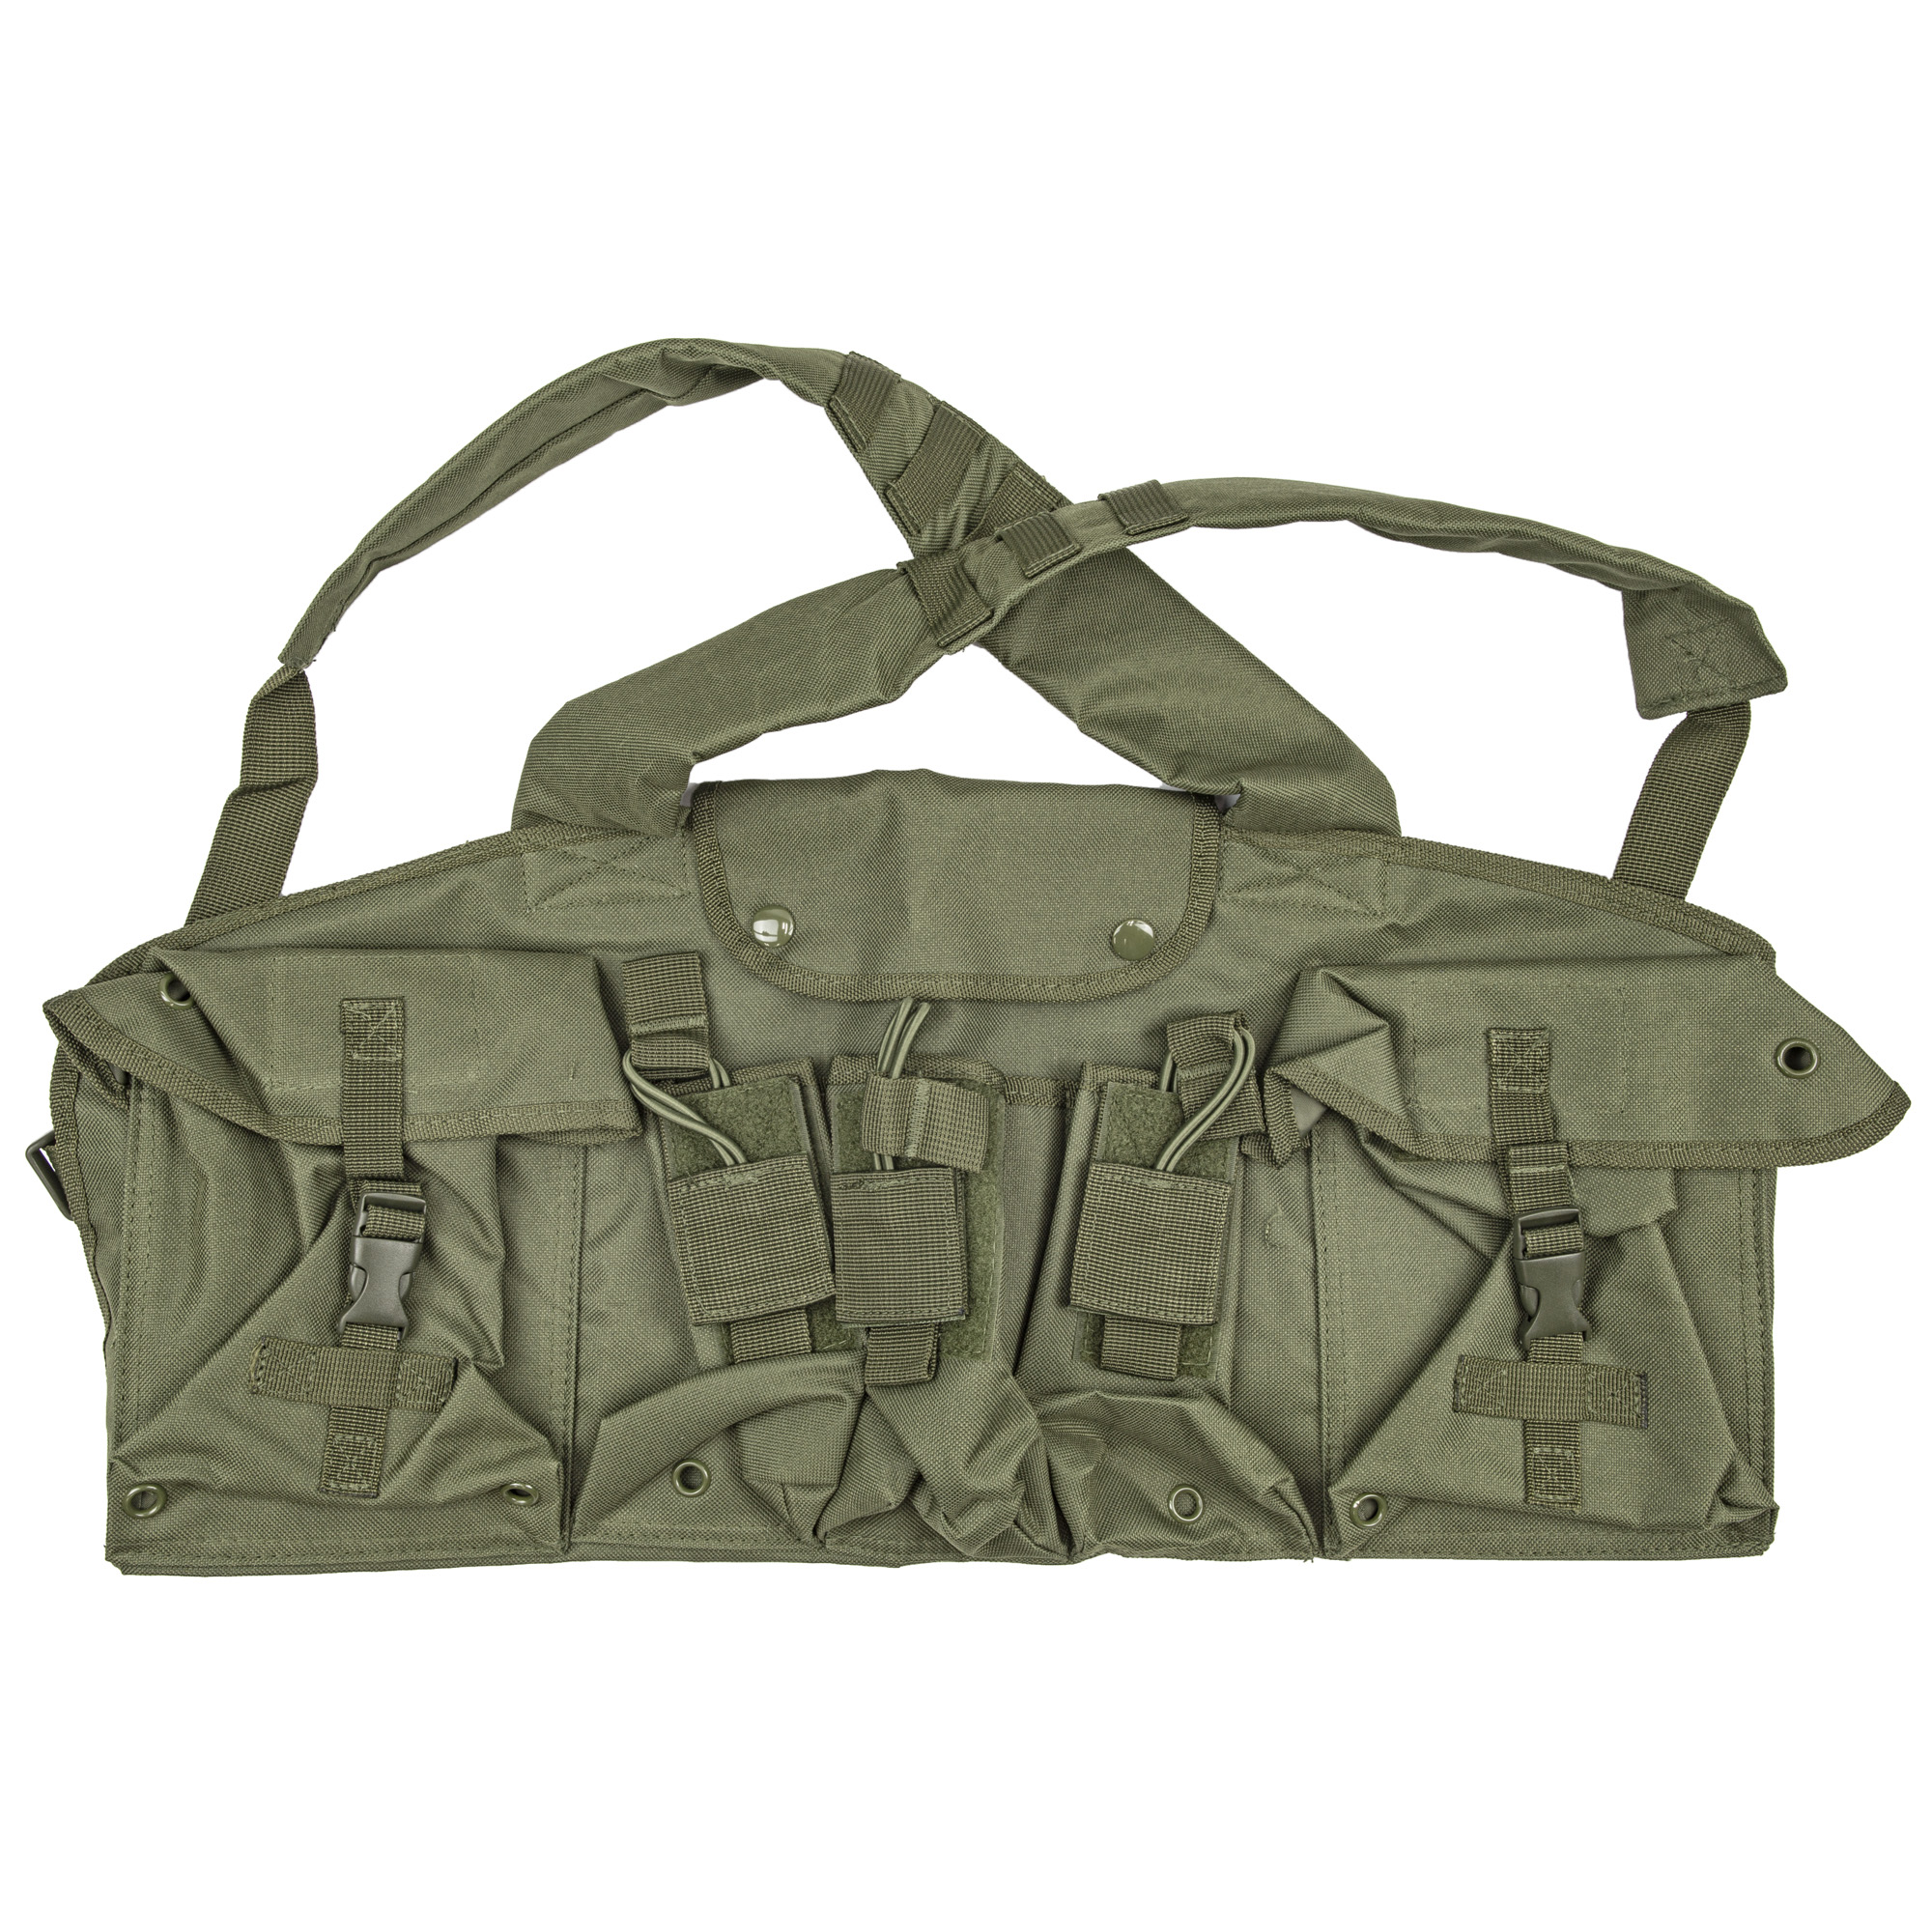 """This AK Chest Rig includes three double AK Magazine pouches"""" with hook and loop fasteners and bungee cord retention straps"""" to carry up to six 30 round Magazines. There are two large Utility Pouches on each side of the chest rig with quick connect buckle flaps for storing additional ammo and gear and one central Chest compartment with button snaps for more storage."""